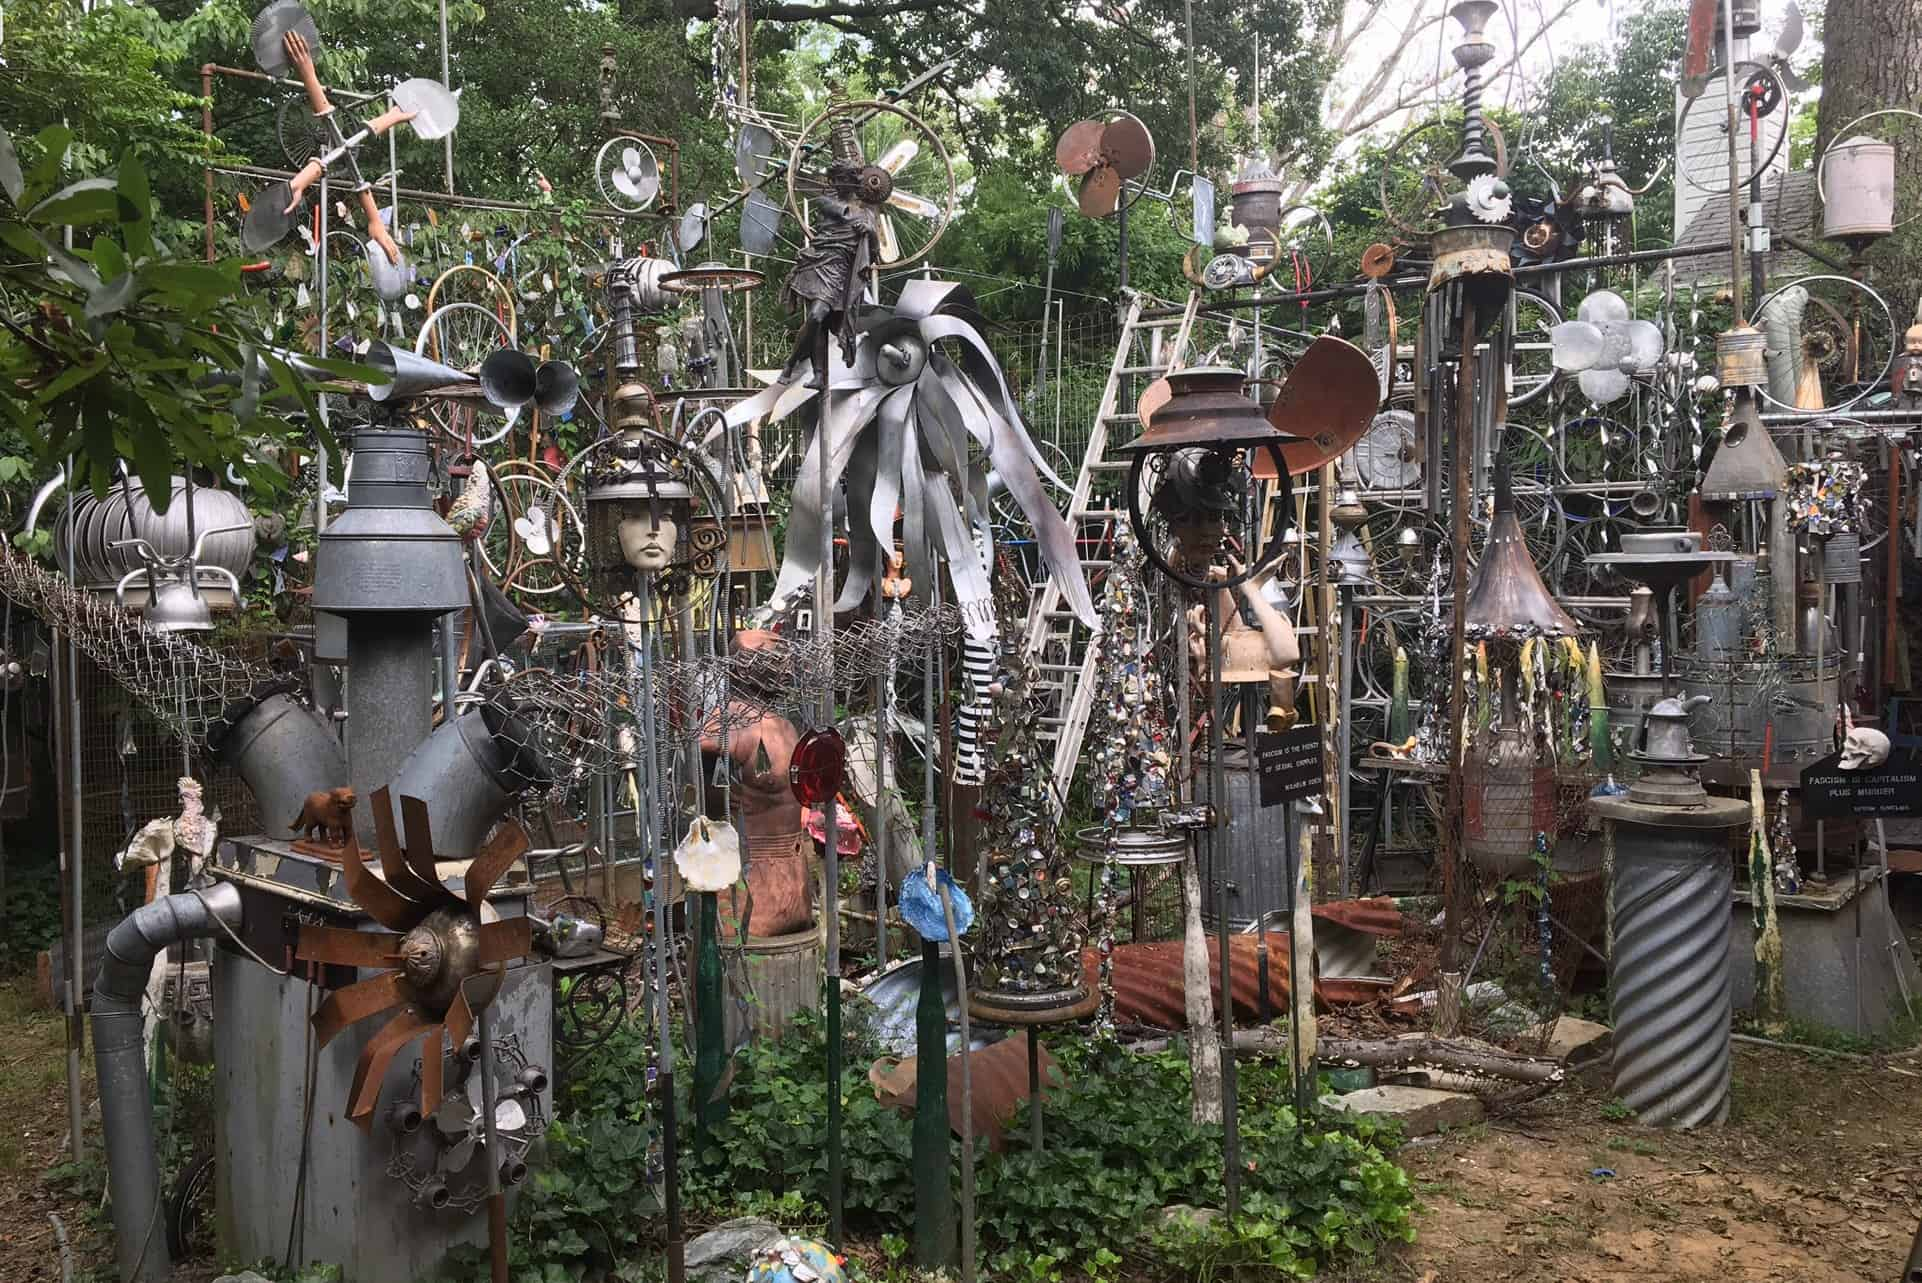 Outdoor space at art house, lots of moving metal pieces all interacting together